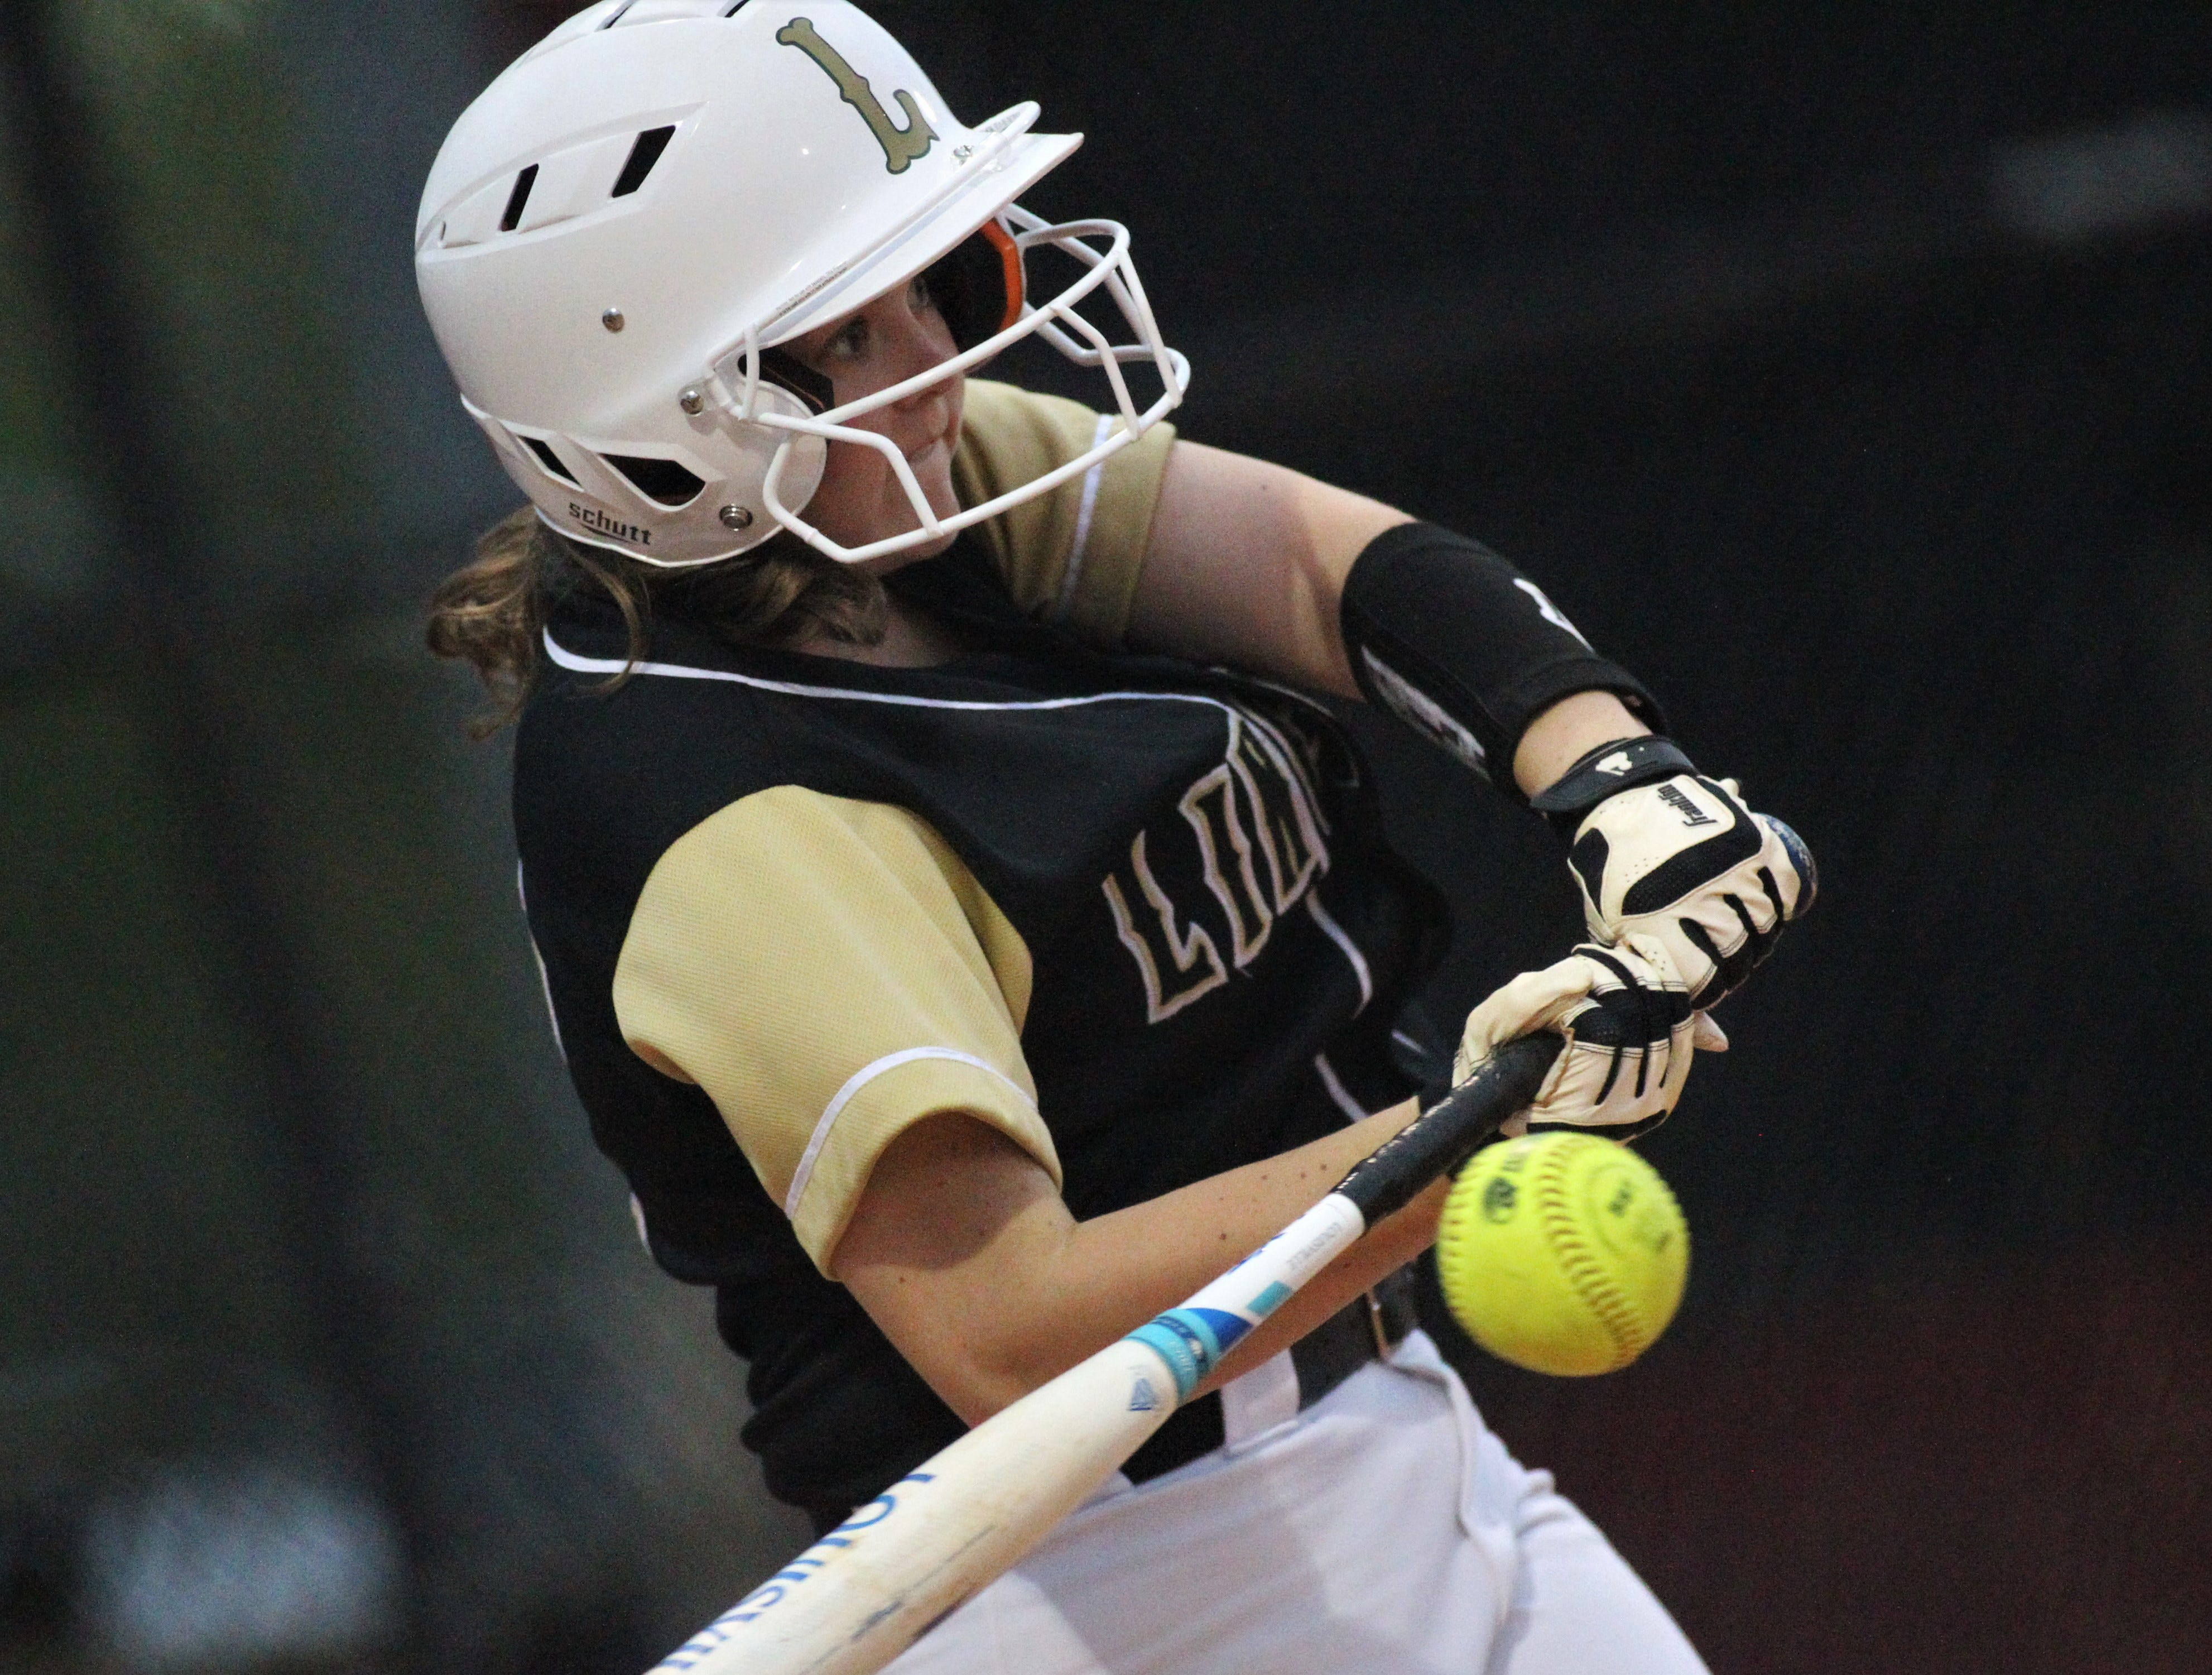 Lincoln sophomore Tayler Barrett bats as Lincoln's softball team beat Florida High 7-3 on Thursday, April 4, 2019.